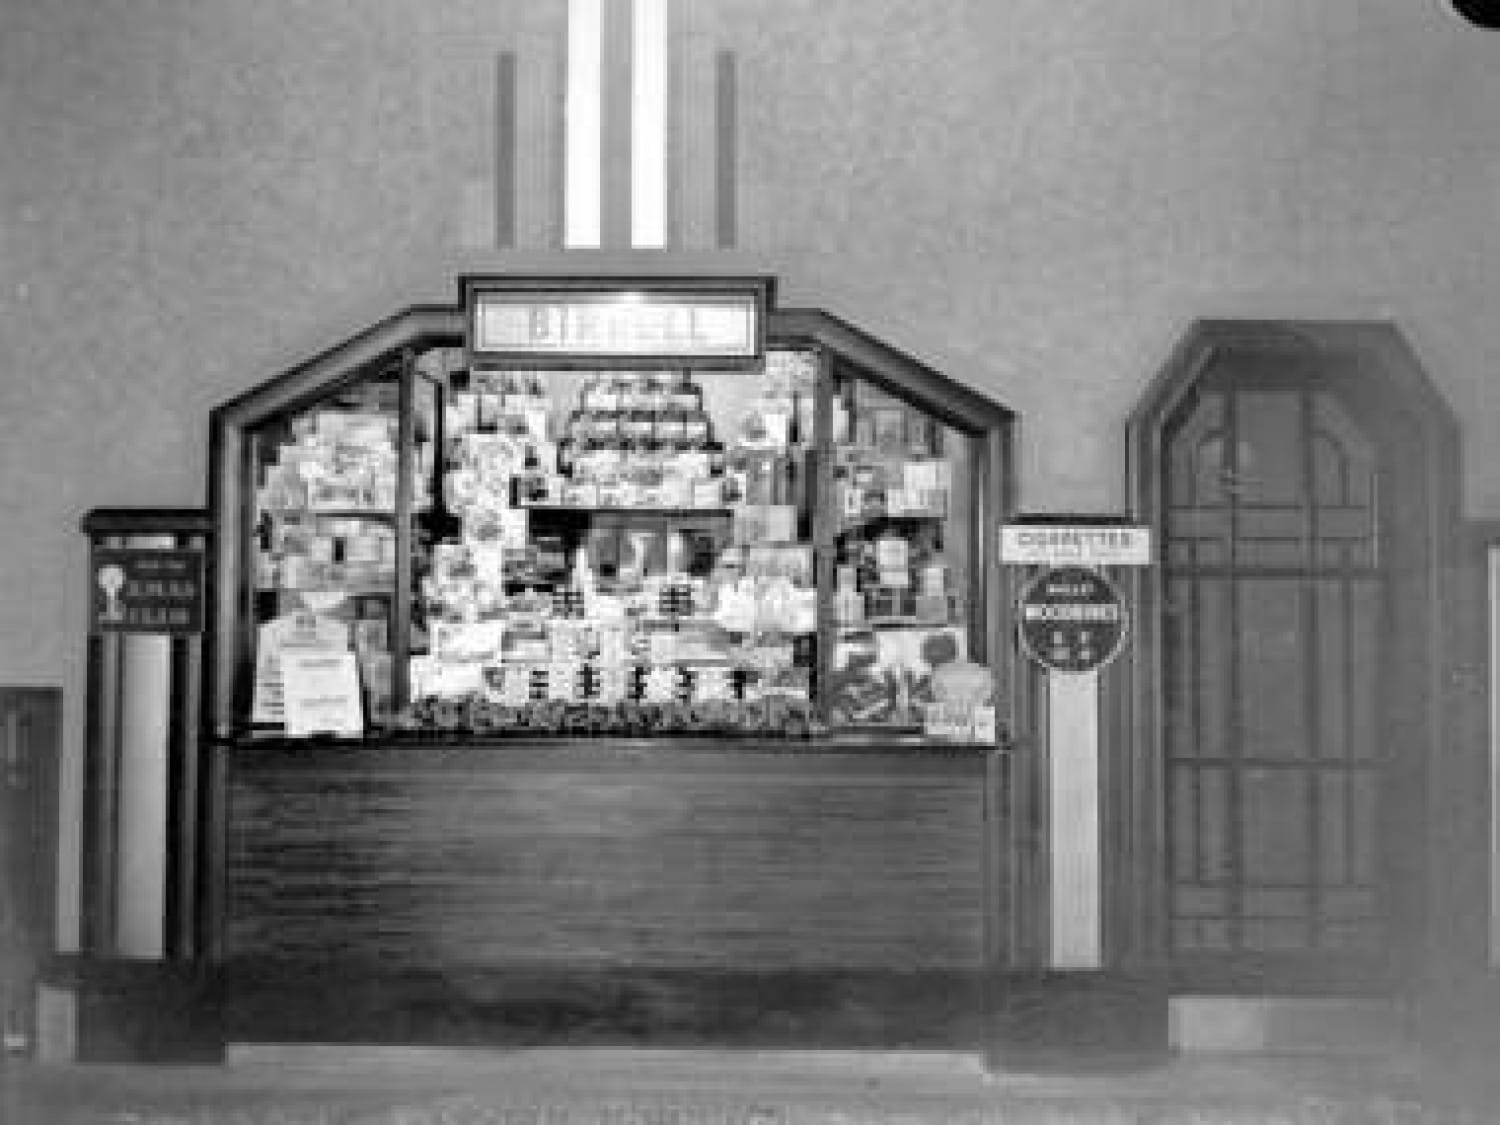 The sweetie kiosk (Glasgow City Archives)